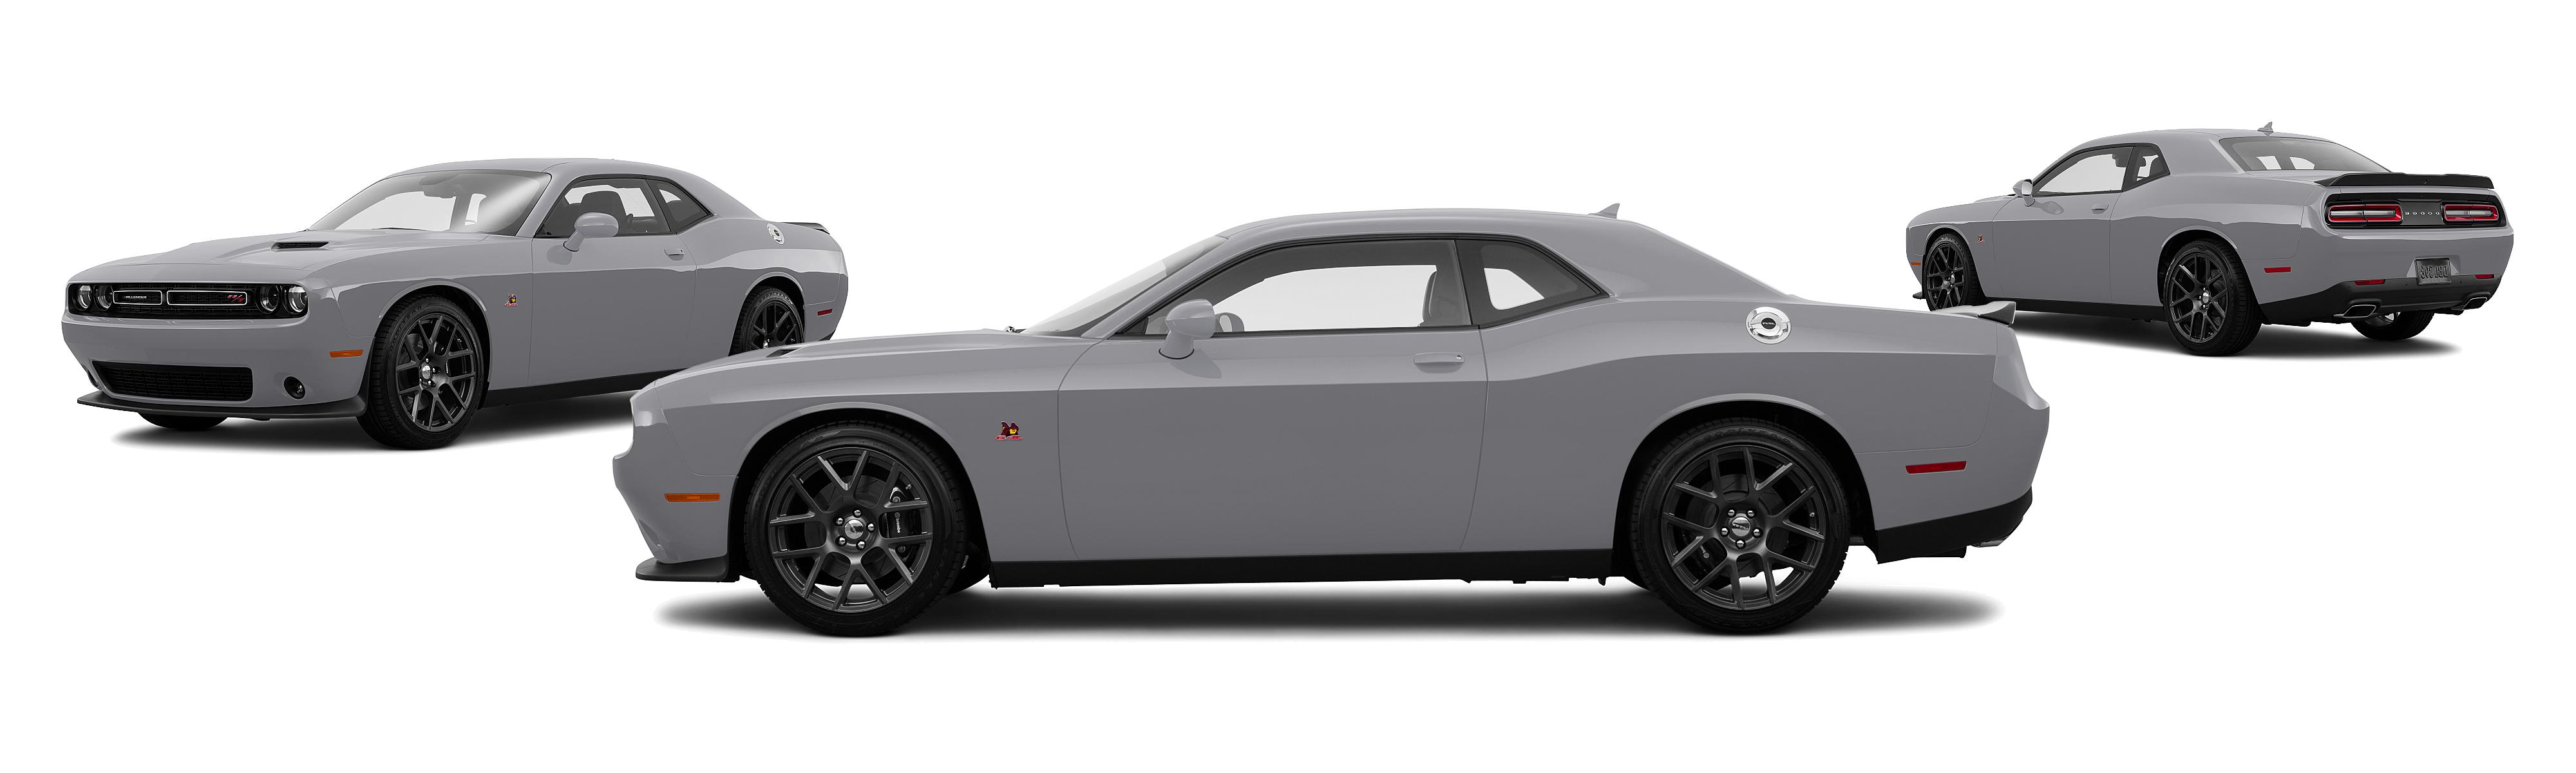 rt cars dodge photos and t review rs r front specs challenger